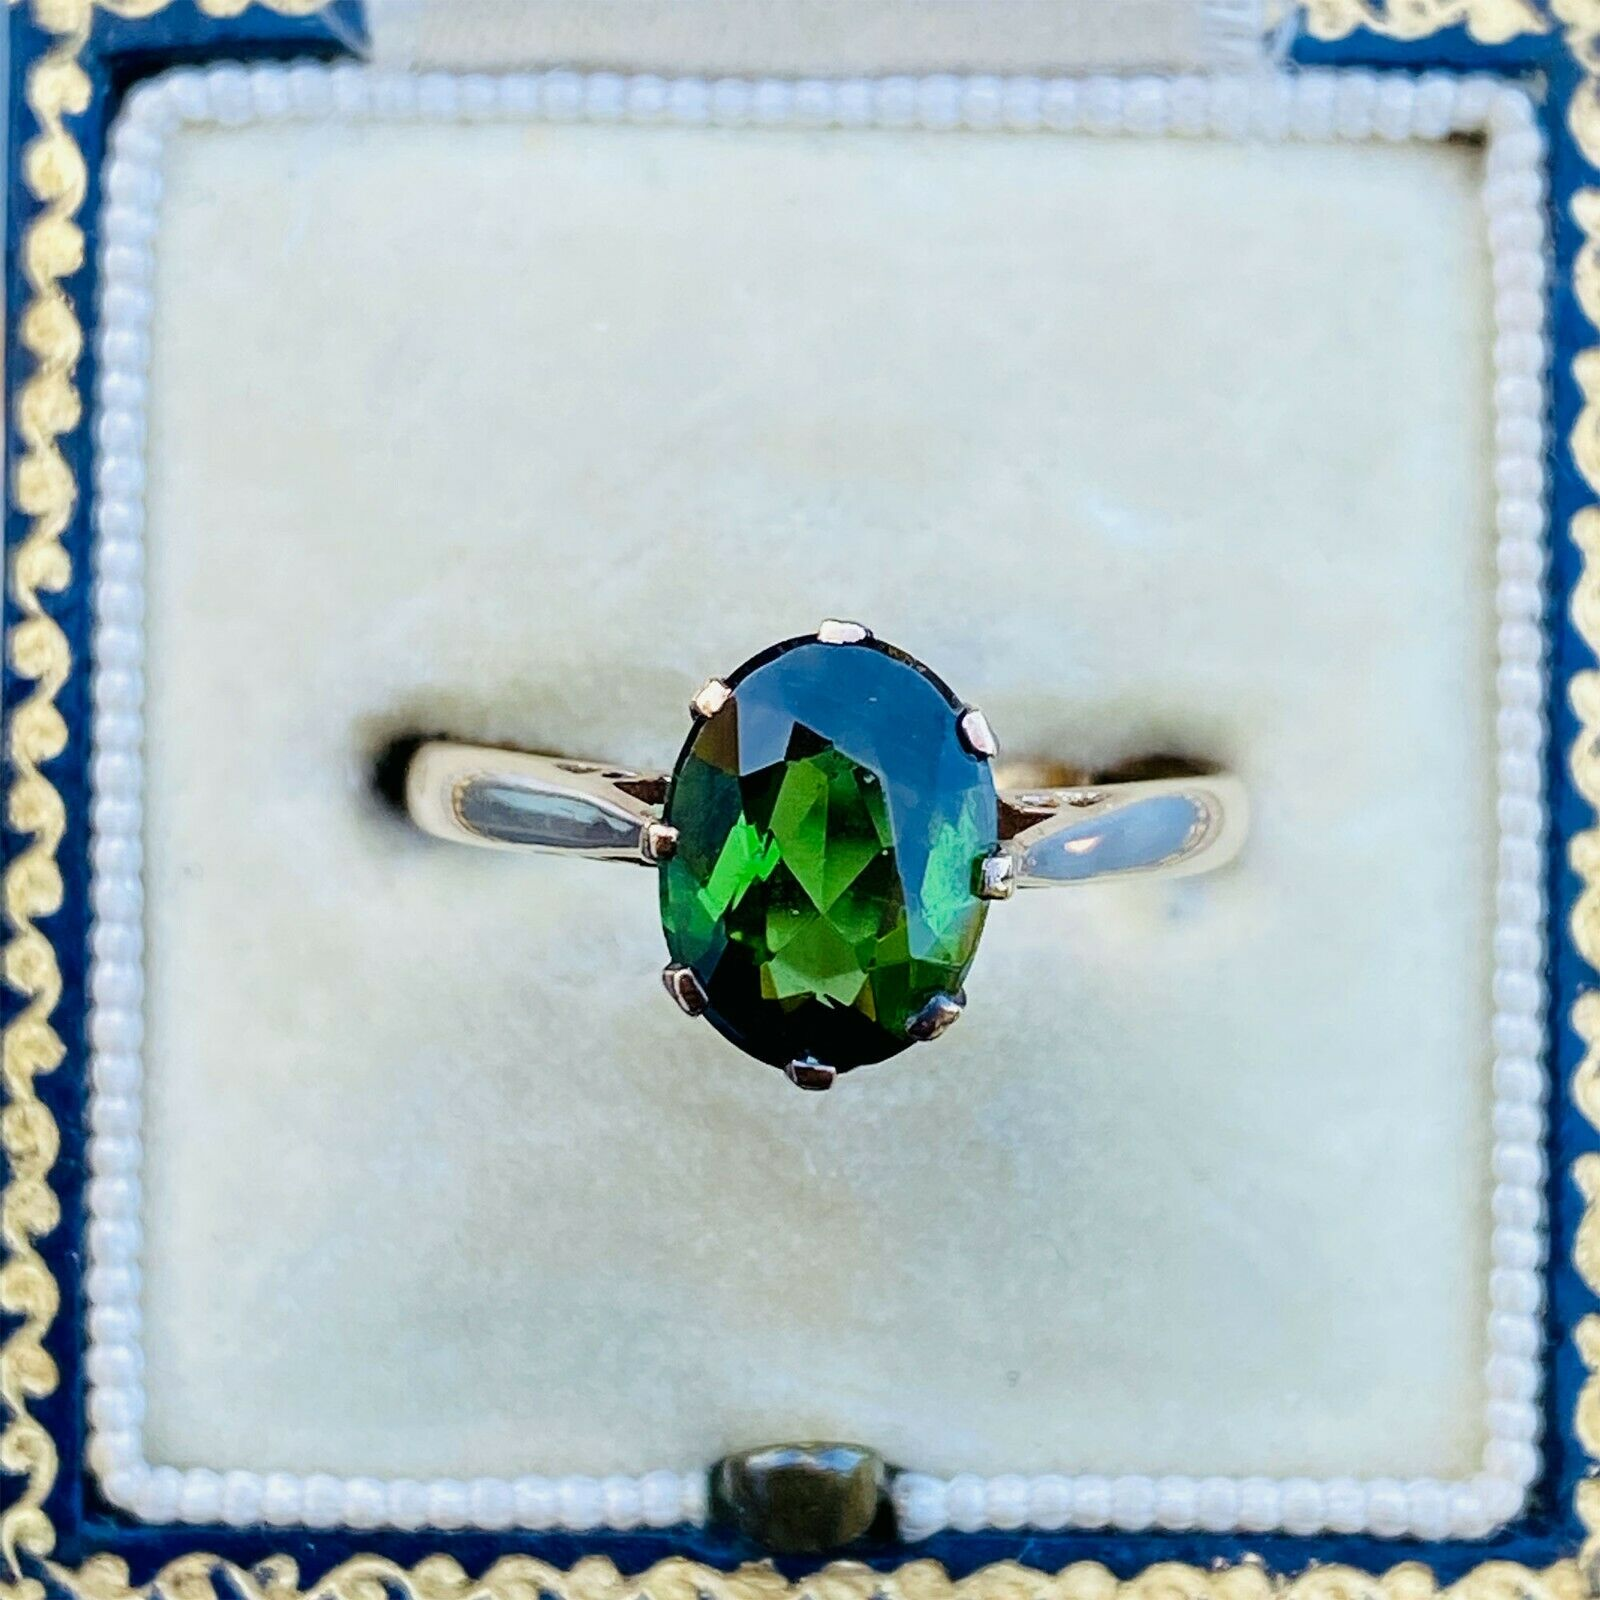 Vintage 9ct, 9k, 375 Gold, Tourmaline 1.86ct solitaire Ring, London